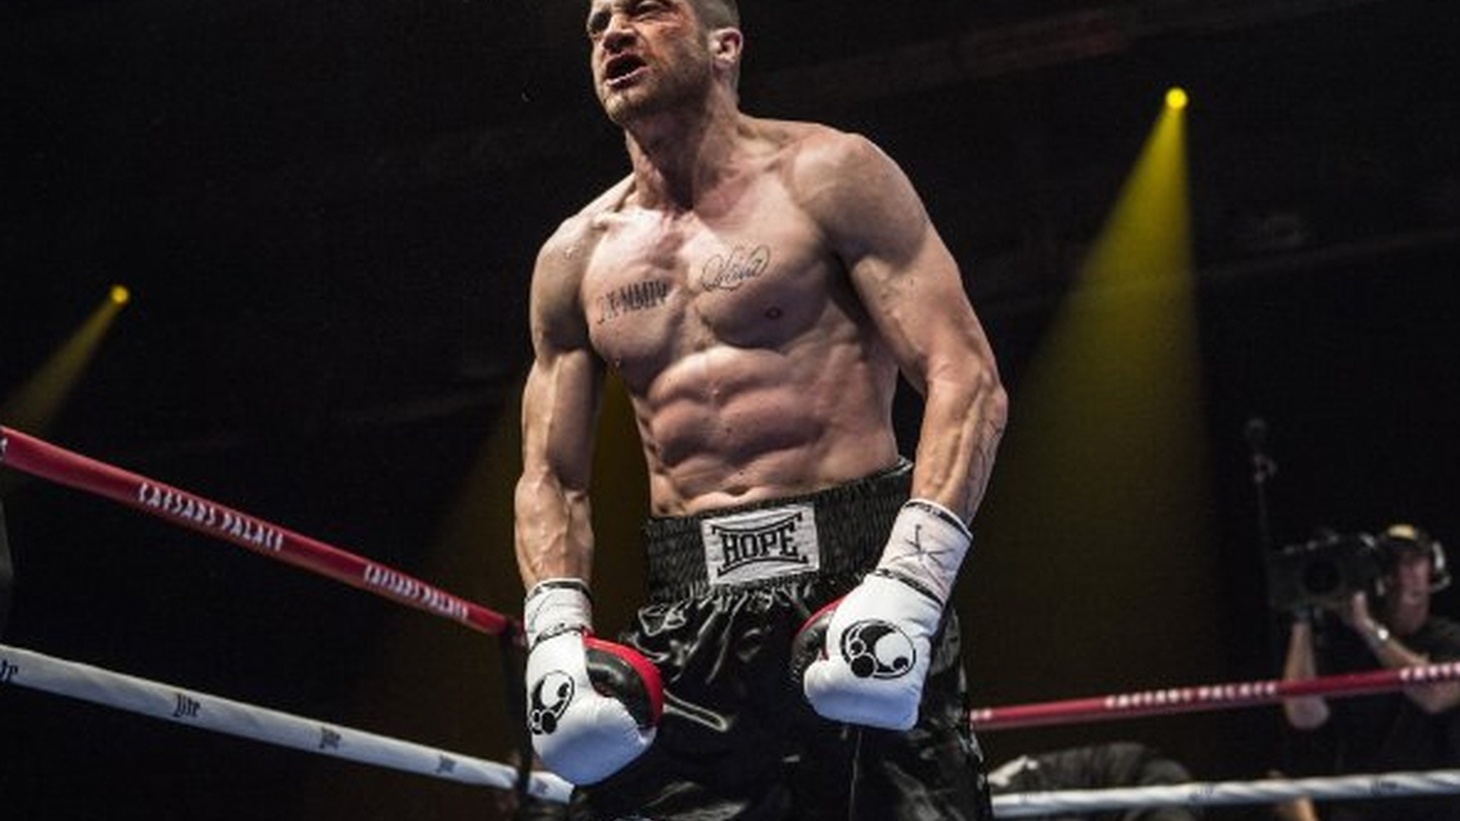 Southpaw stars Jake Gyllenhaal as a boxer in desperate need of redemption.